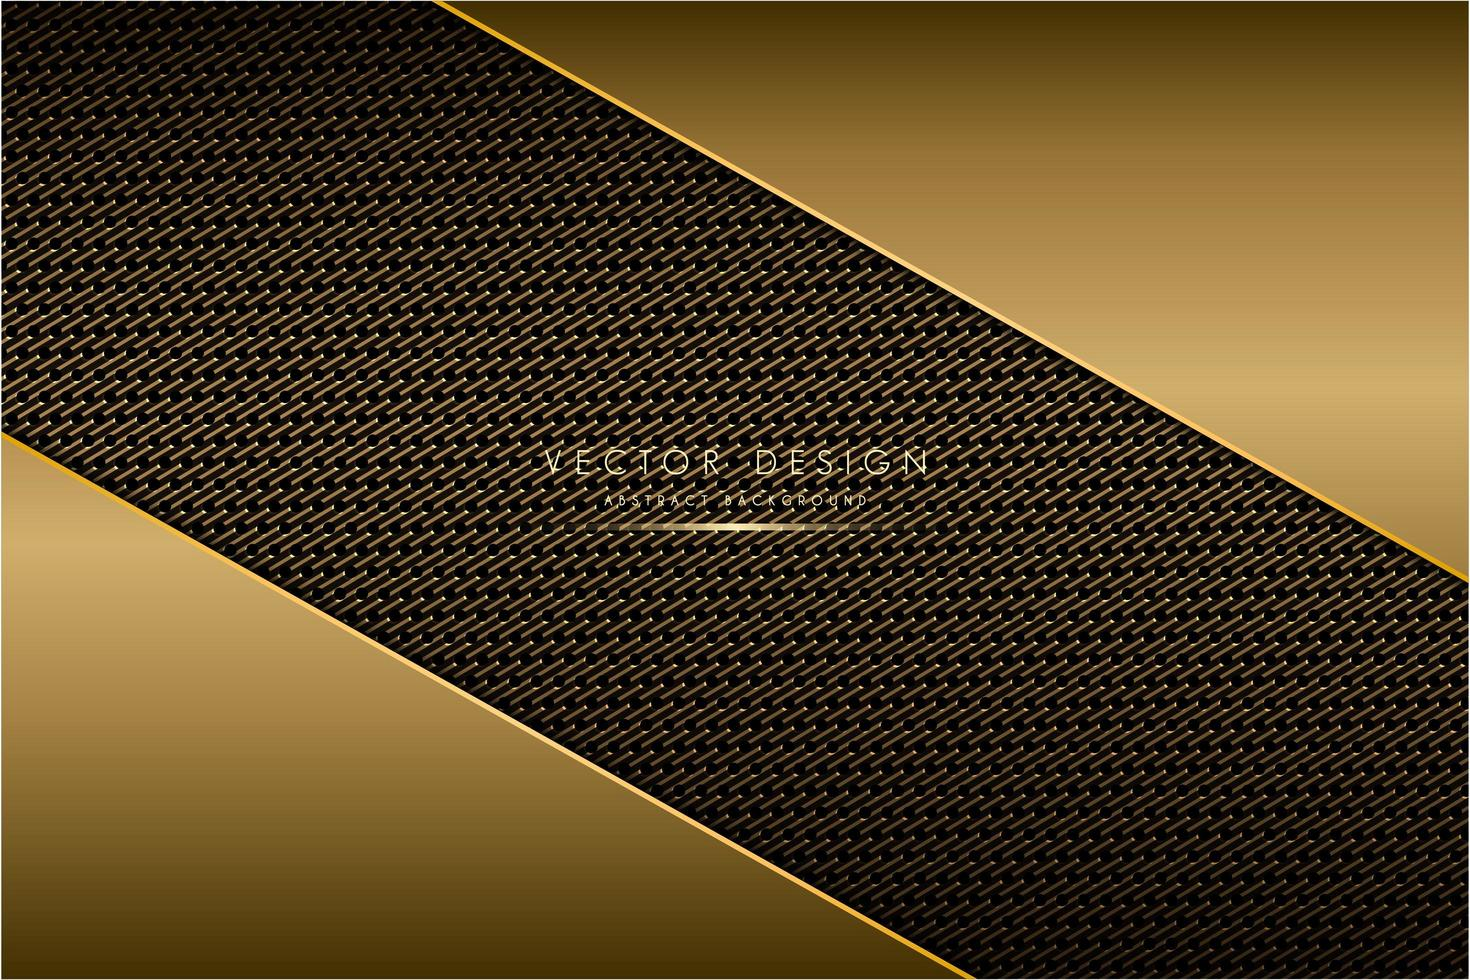 Metallic angled plates with carbon fiber texture vector